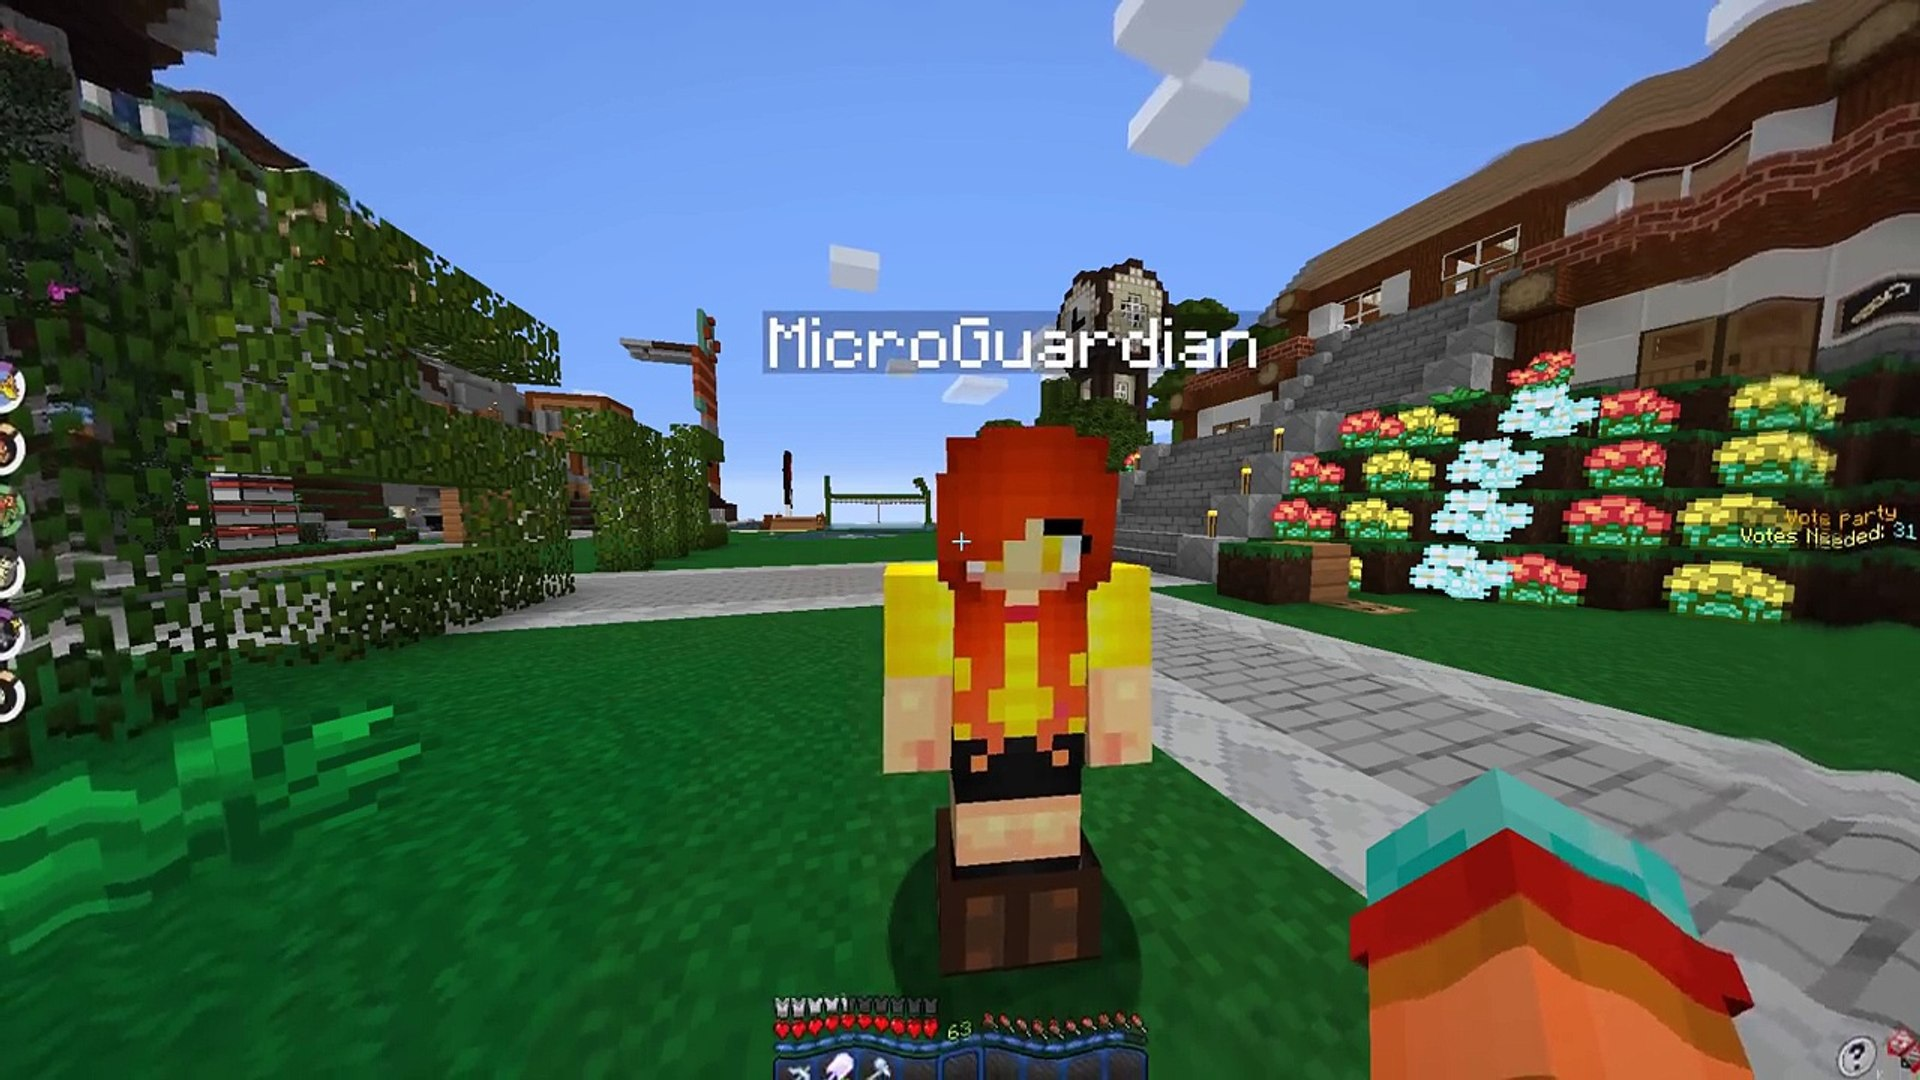 I Should Not Have Gone To This Roblox Mansion Microguardian Roleplay Angry Gods Switched Us Pixelmon Journey Ep22 Dollastic Plays Microguardian Dailymotion Video